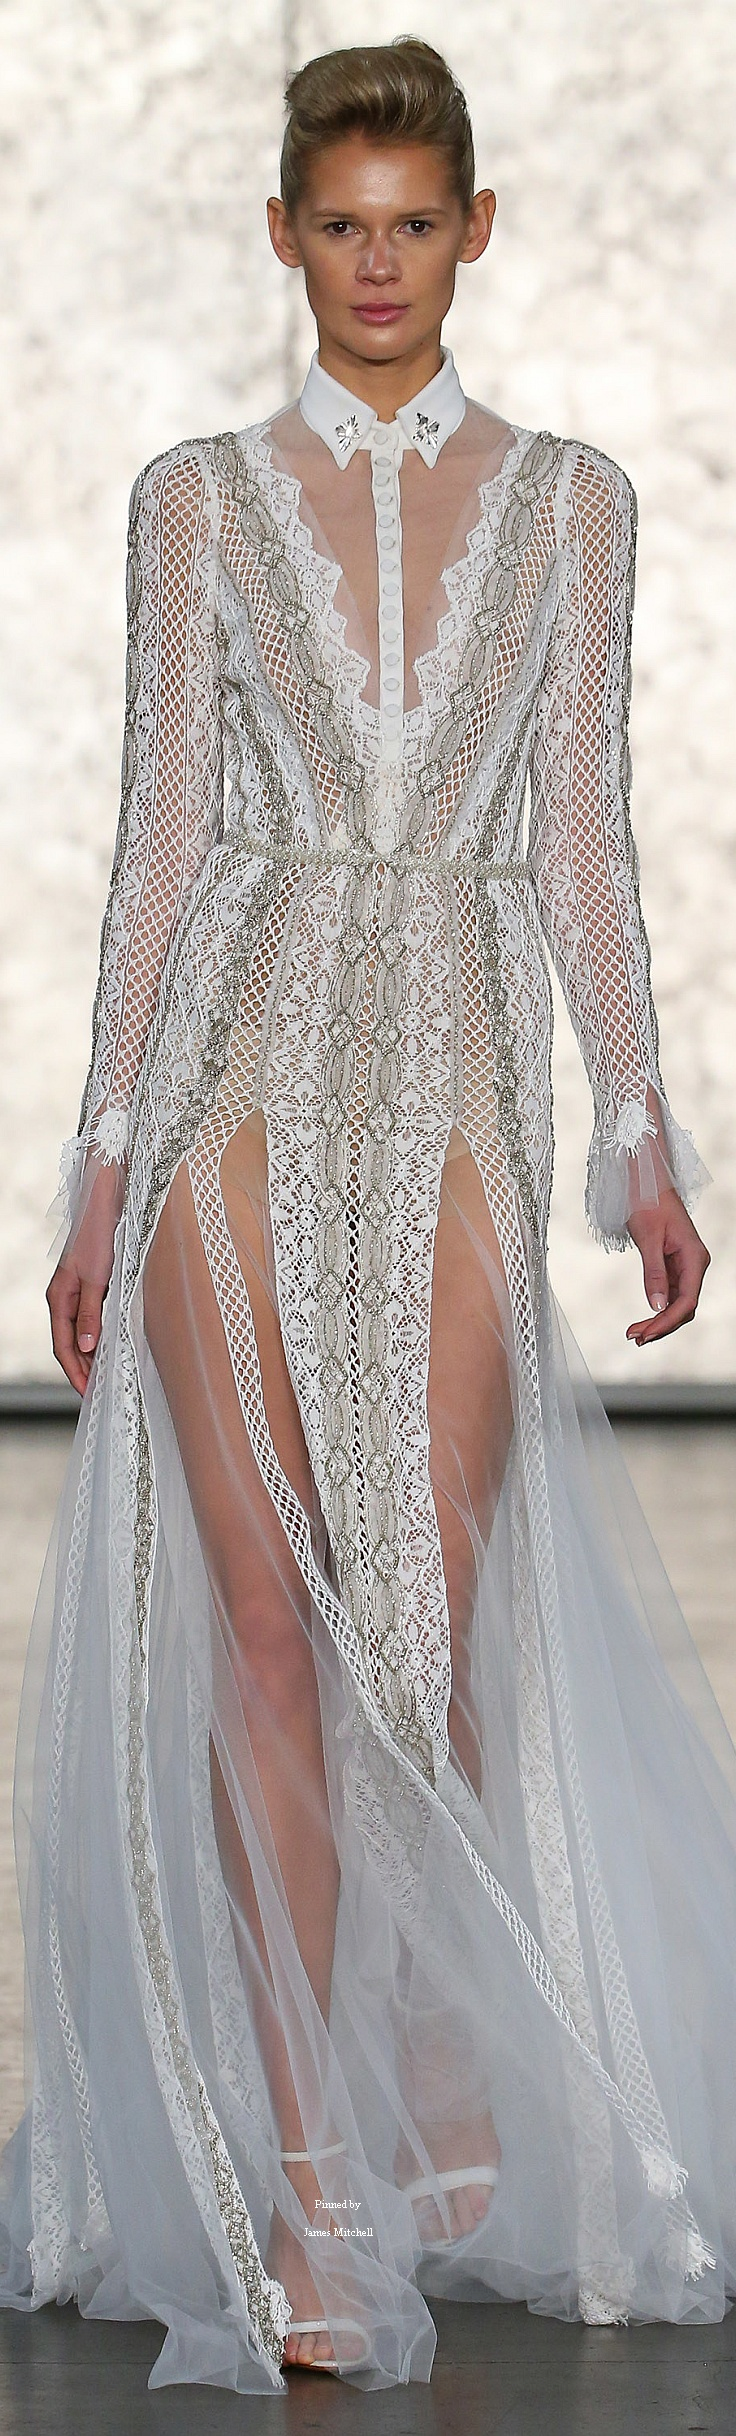 Inbal Dror Bridal Collection Fall 2016